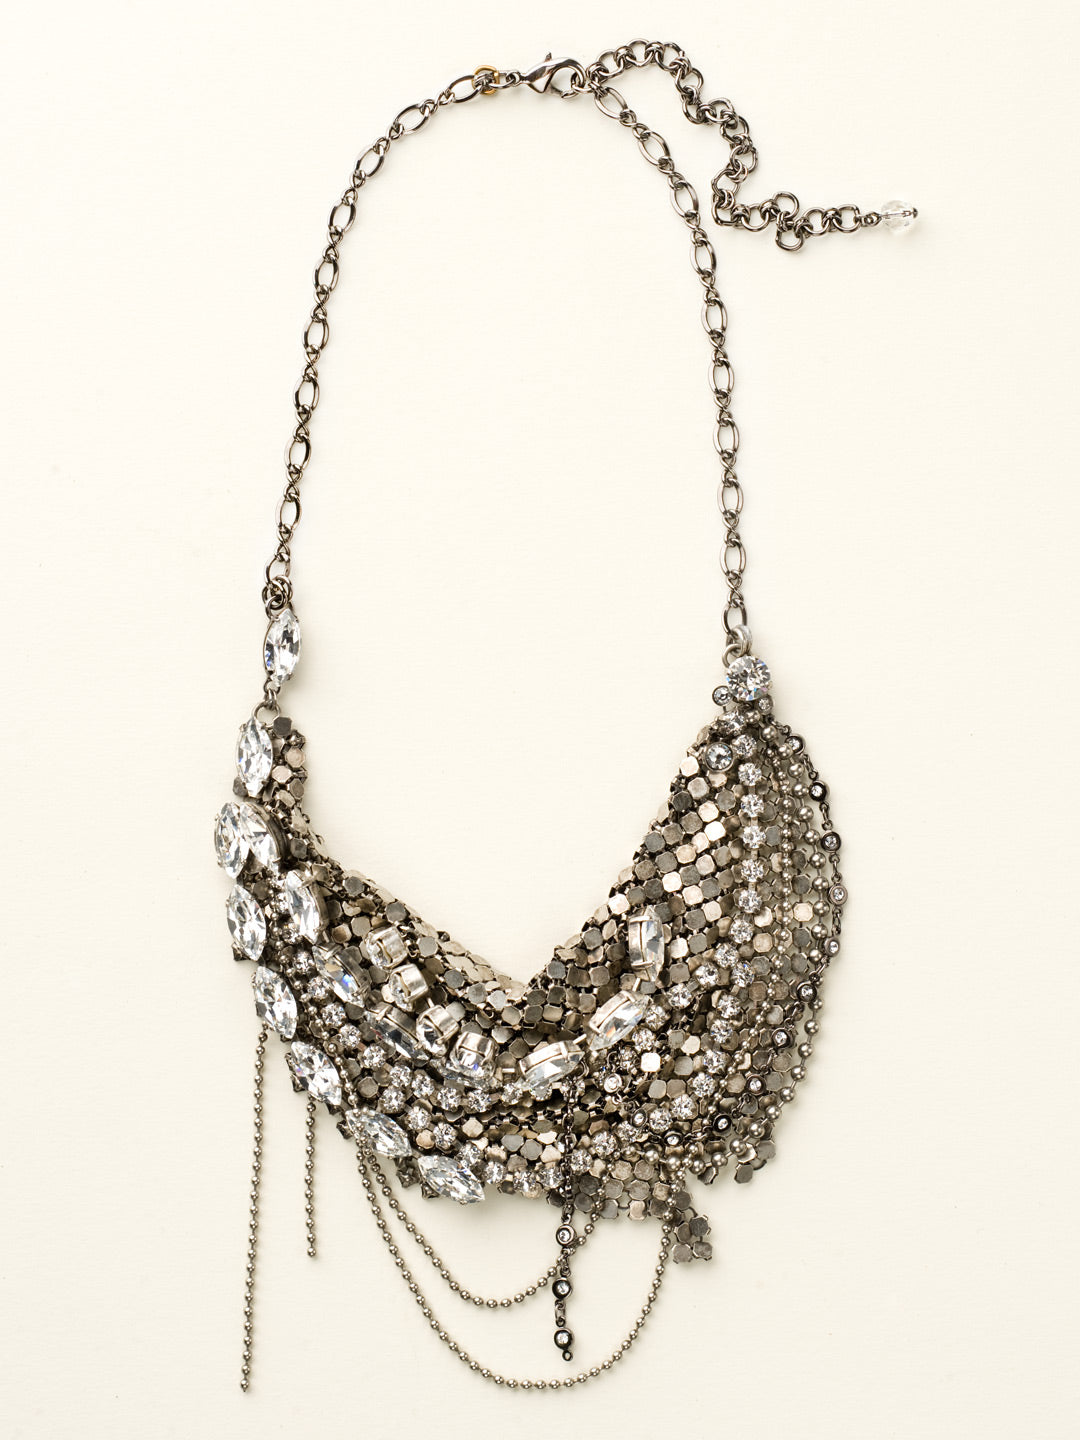 Meant to Mesh Bib Necklace - NCR68ASCCL